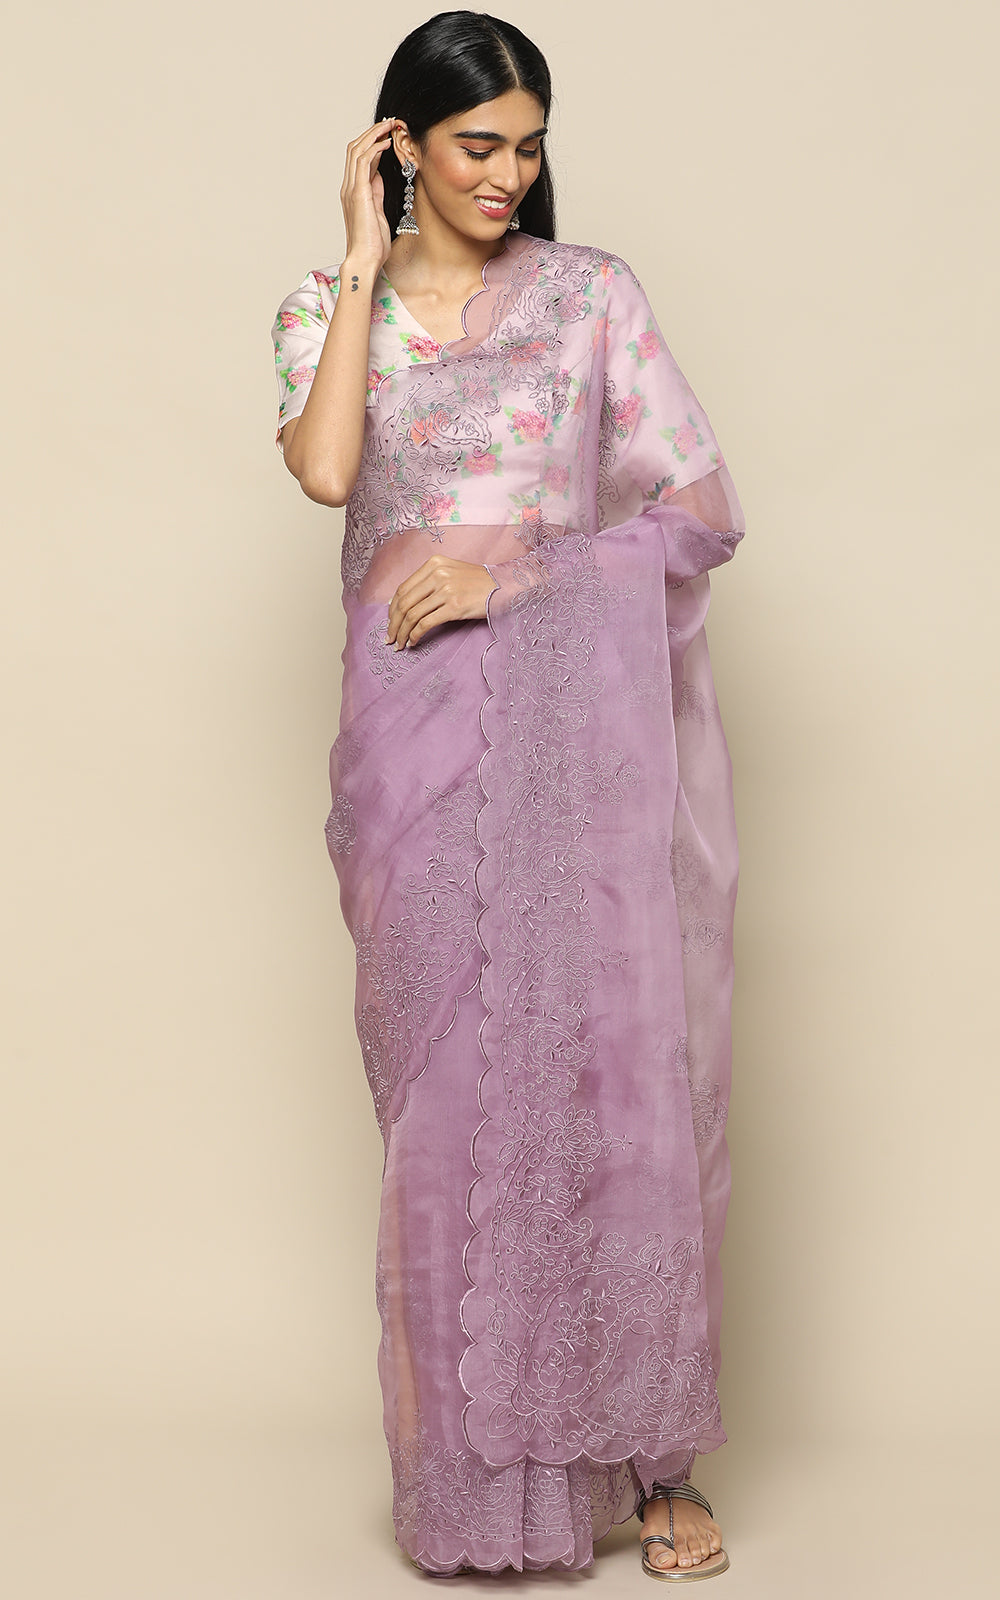 LILAC ORGANZA SAREE WITH SELF COLOR EMBROIDERY